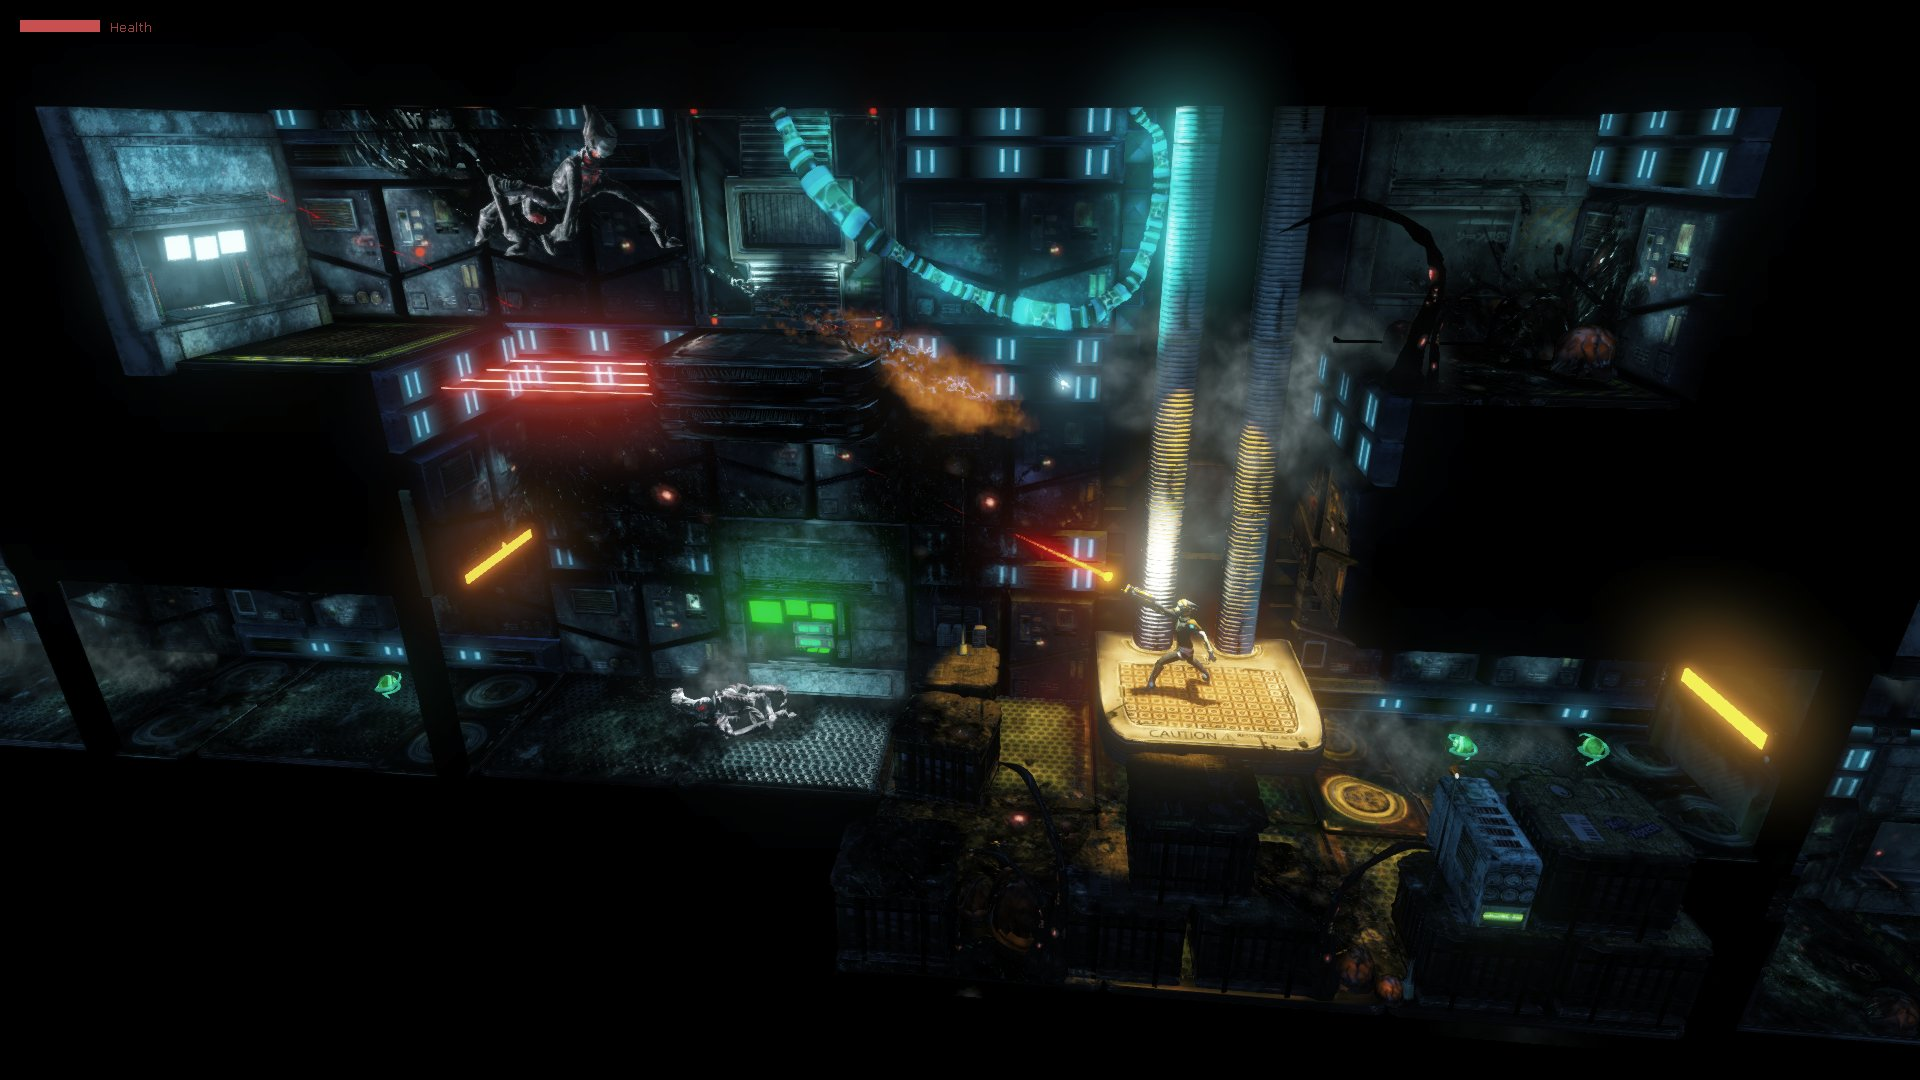 Blasting Aliens in the cyberpunk industry level.